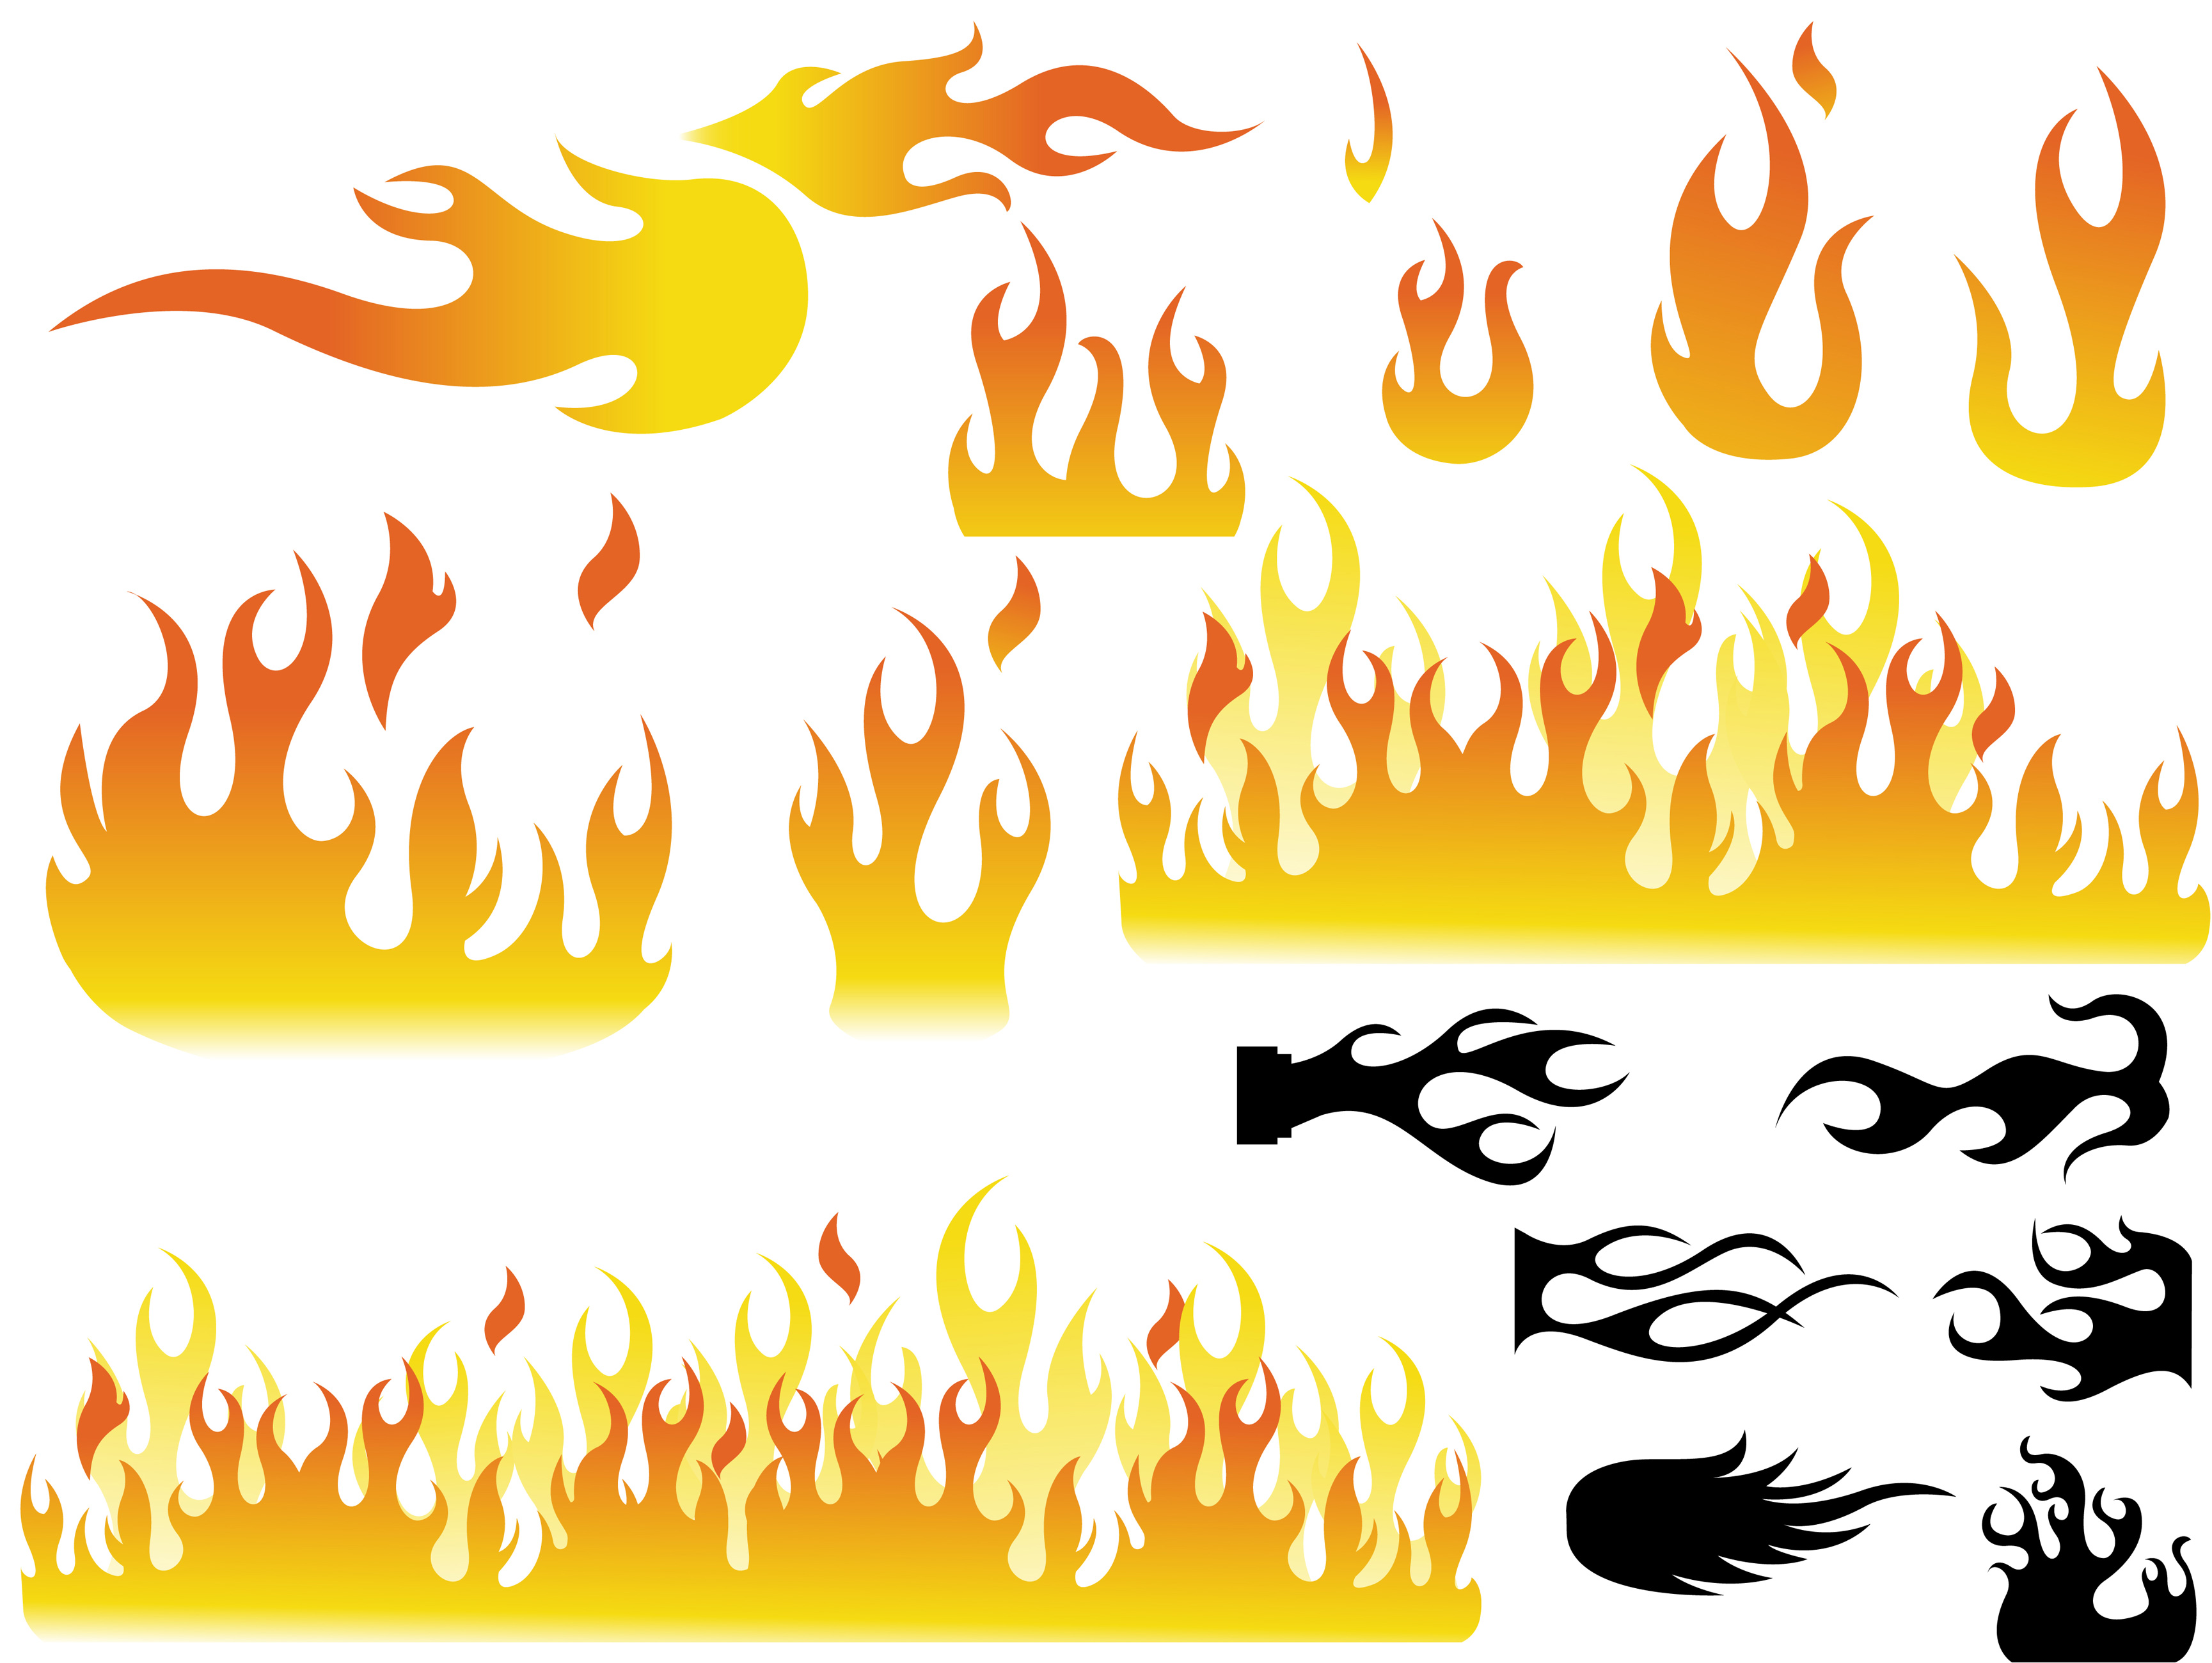 Flames clipart fire design. Free flame vector download